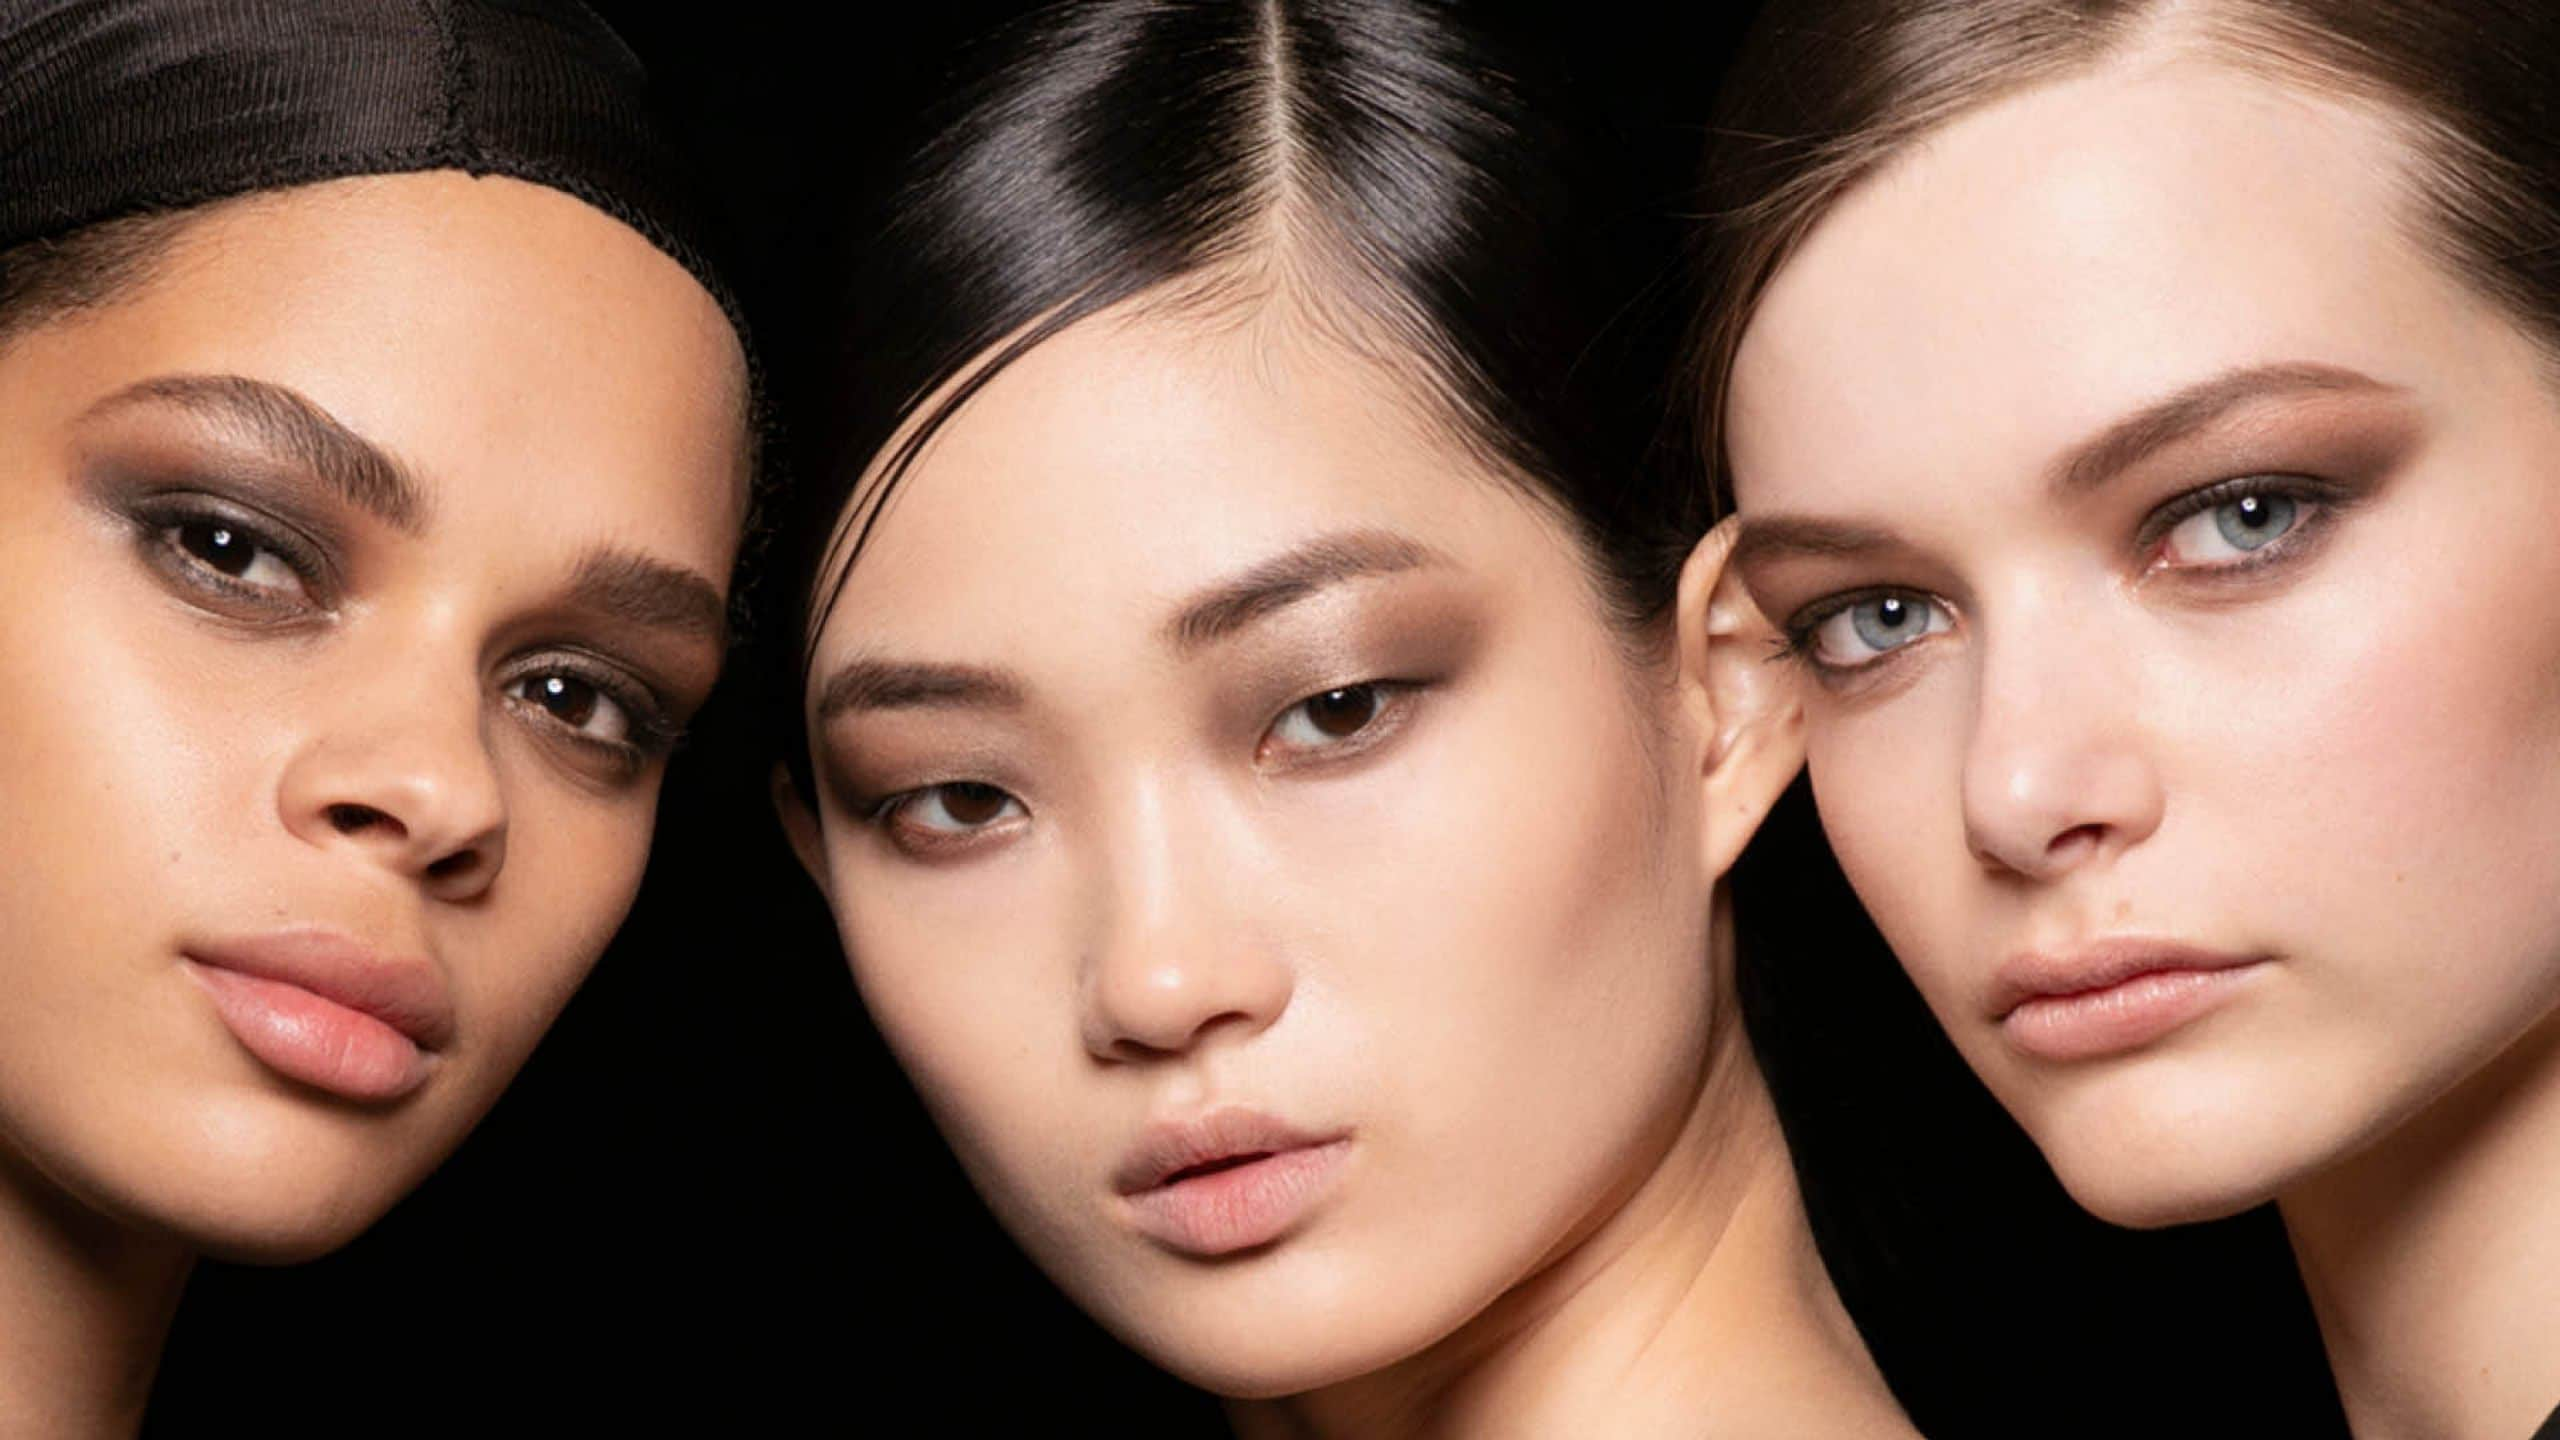 Tom Ford Beauty - AW19 runway